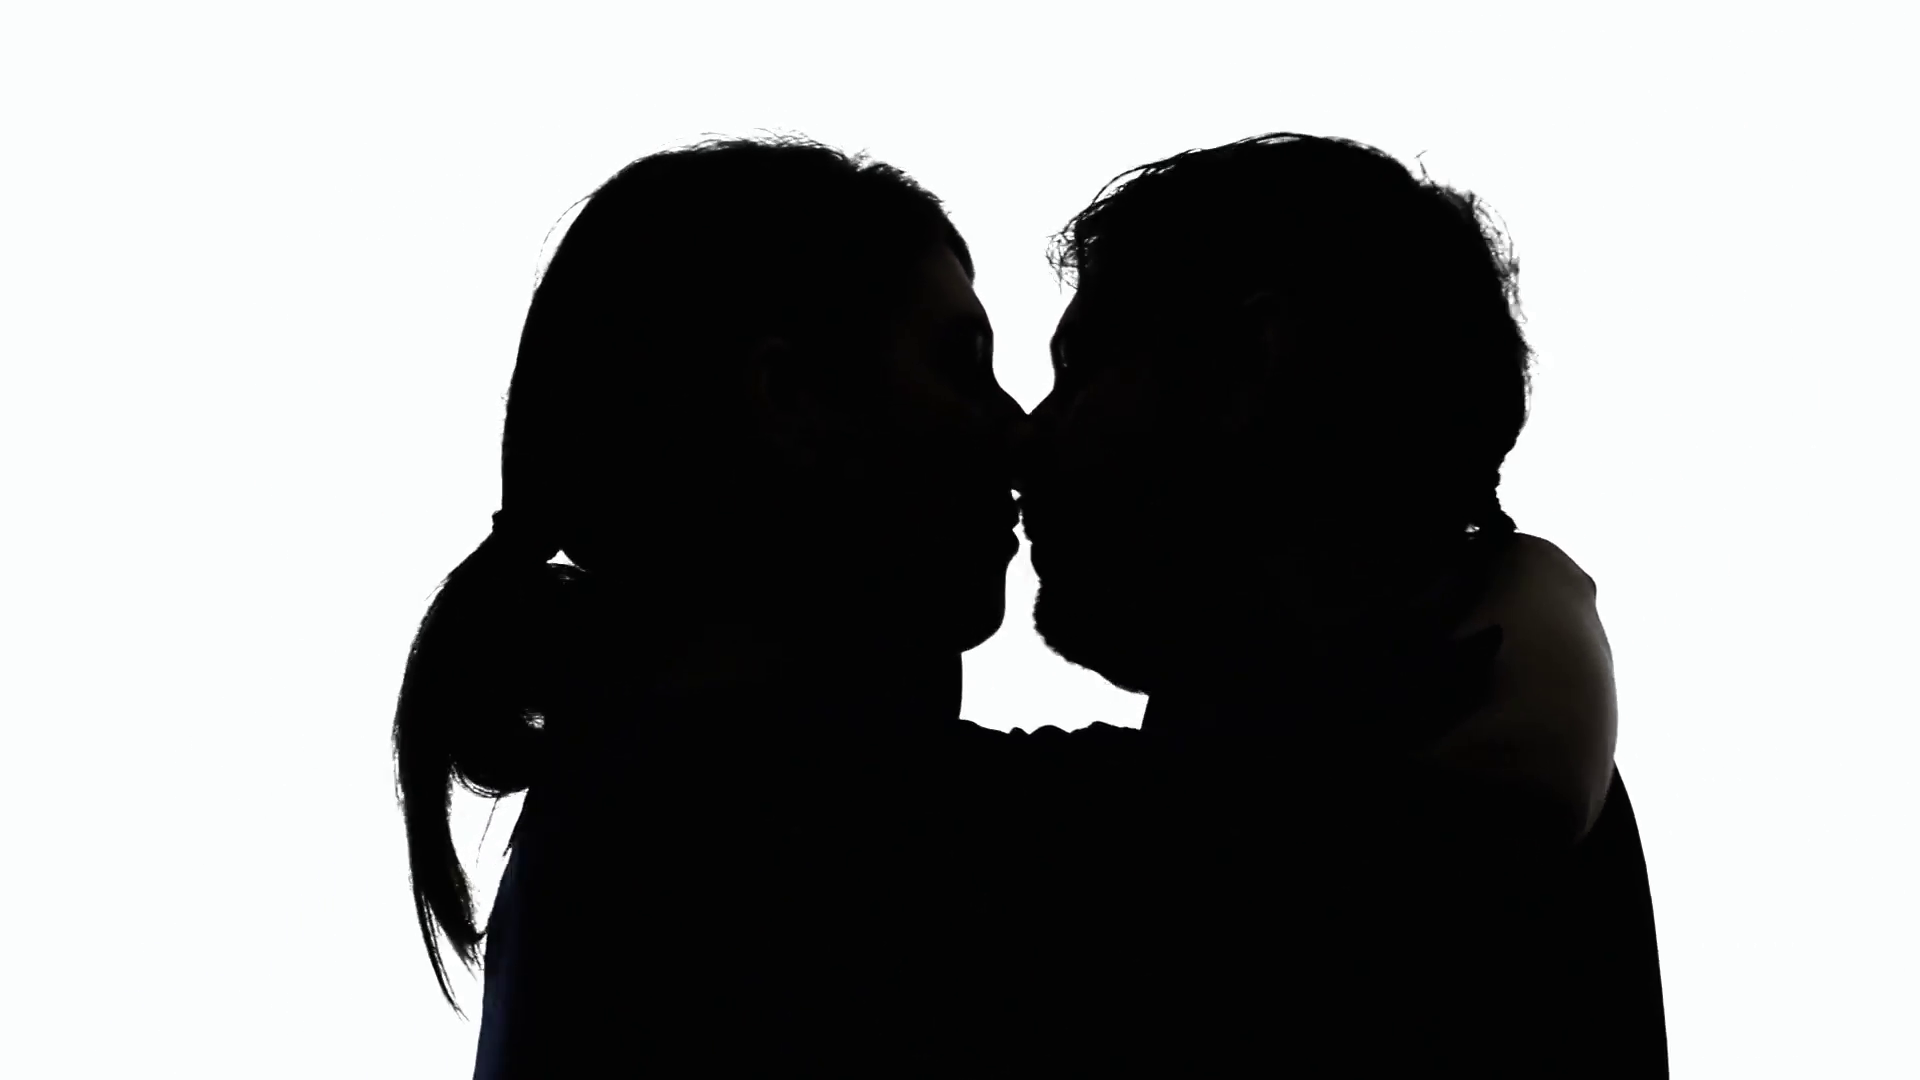 1920x1080 Silhouettes Couple Passionate Love. A Man And A Woman In Love